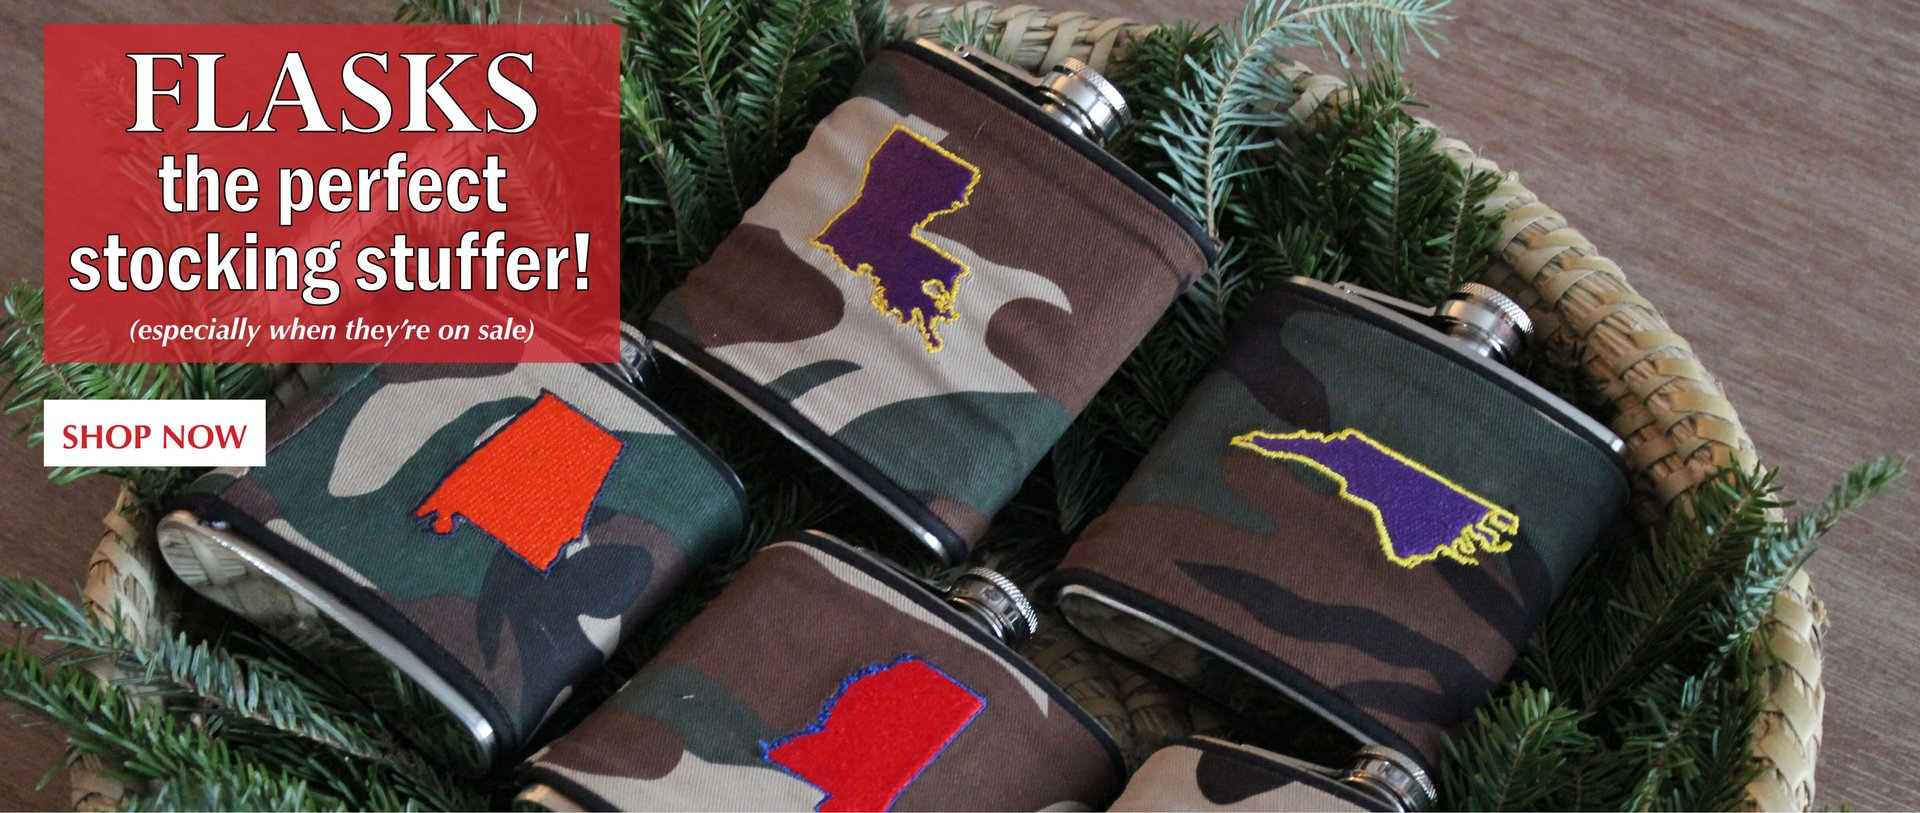 Flasks are the best gift- pick a college or state!